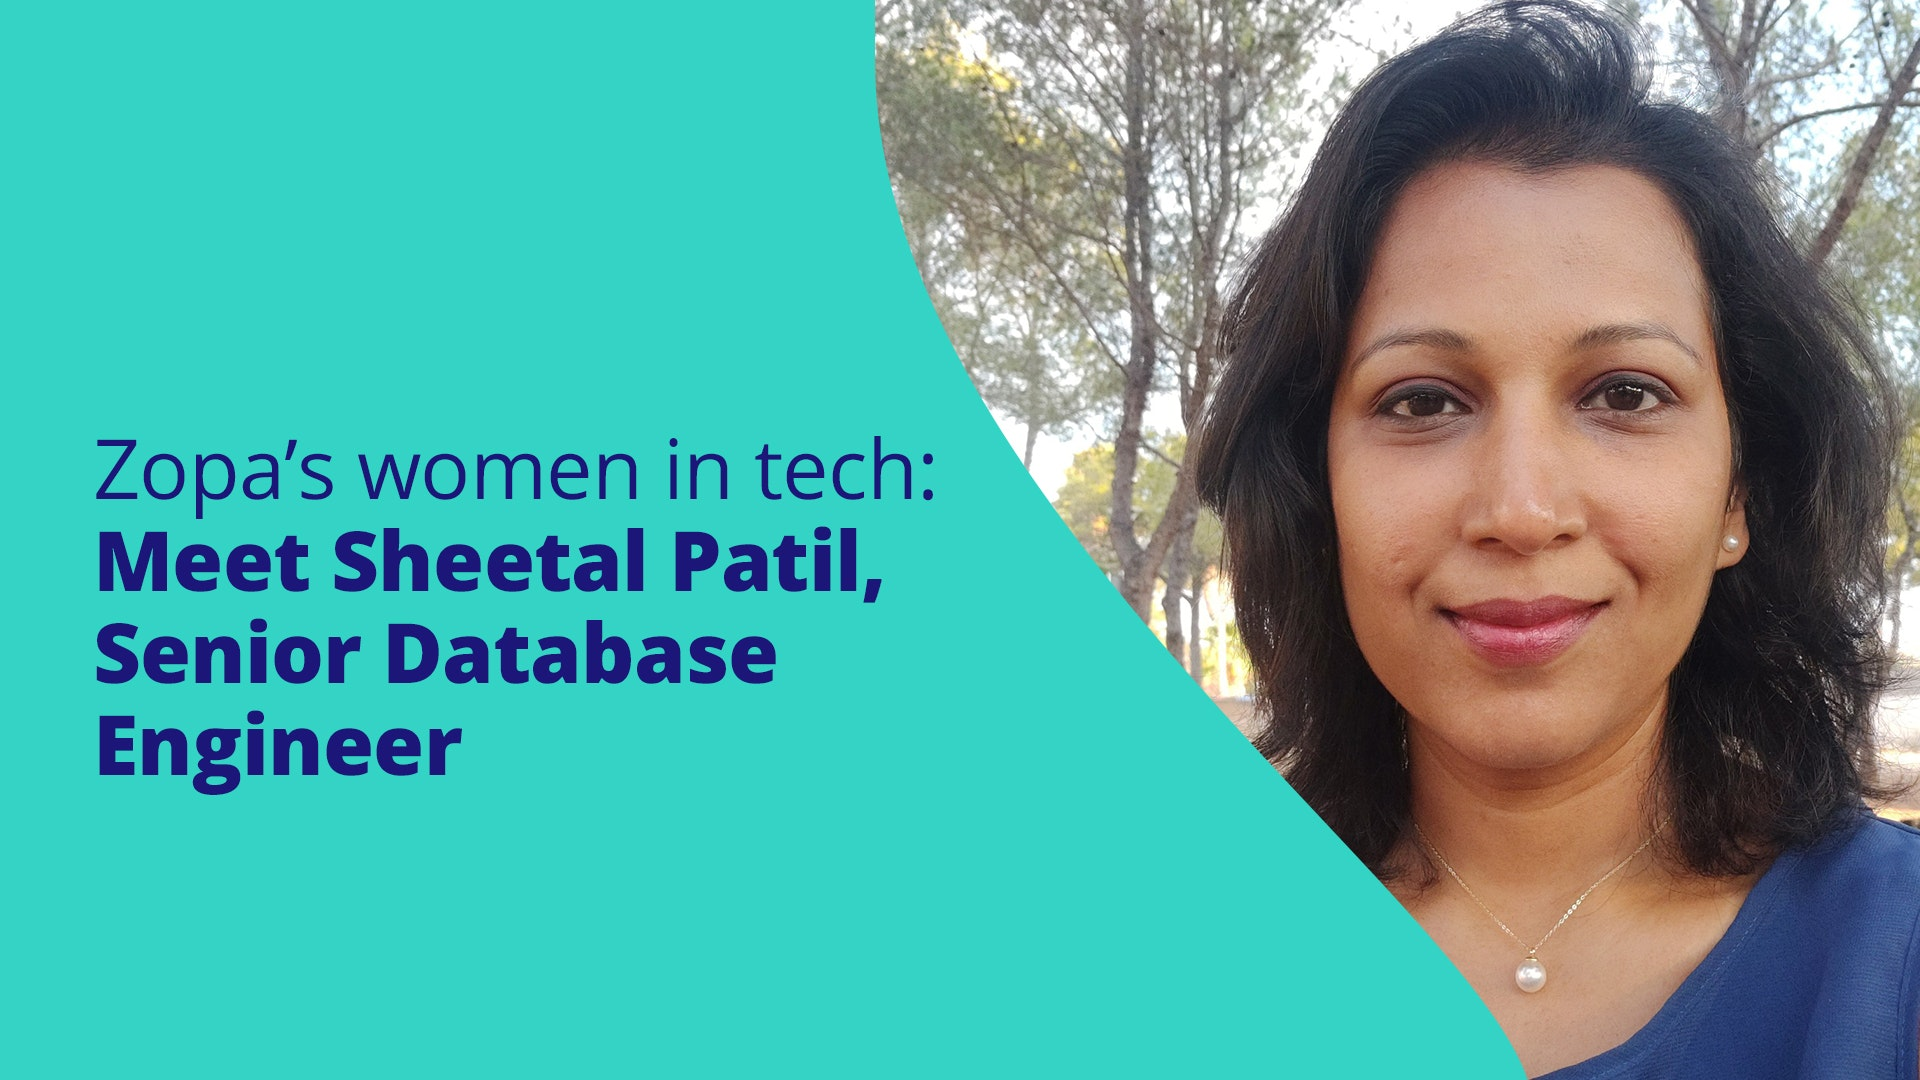 zopa-s-women-in-tech-meet-sheetal-patil-senior-database-engineer